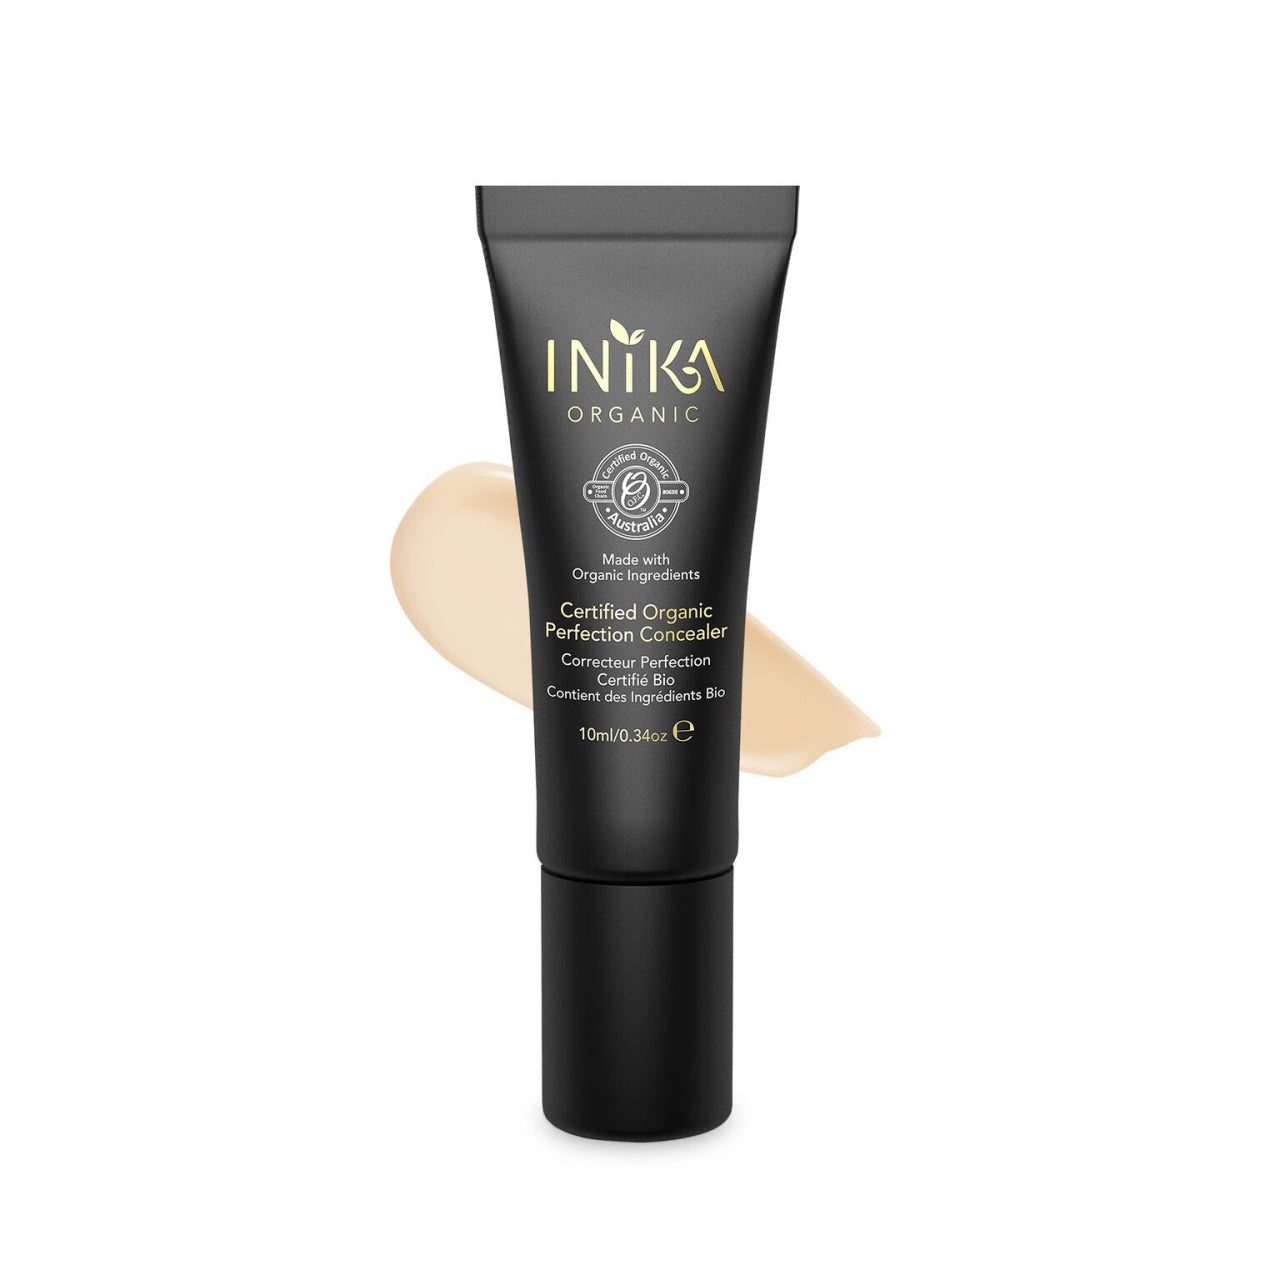 Inika Perfection Concealer